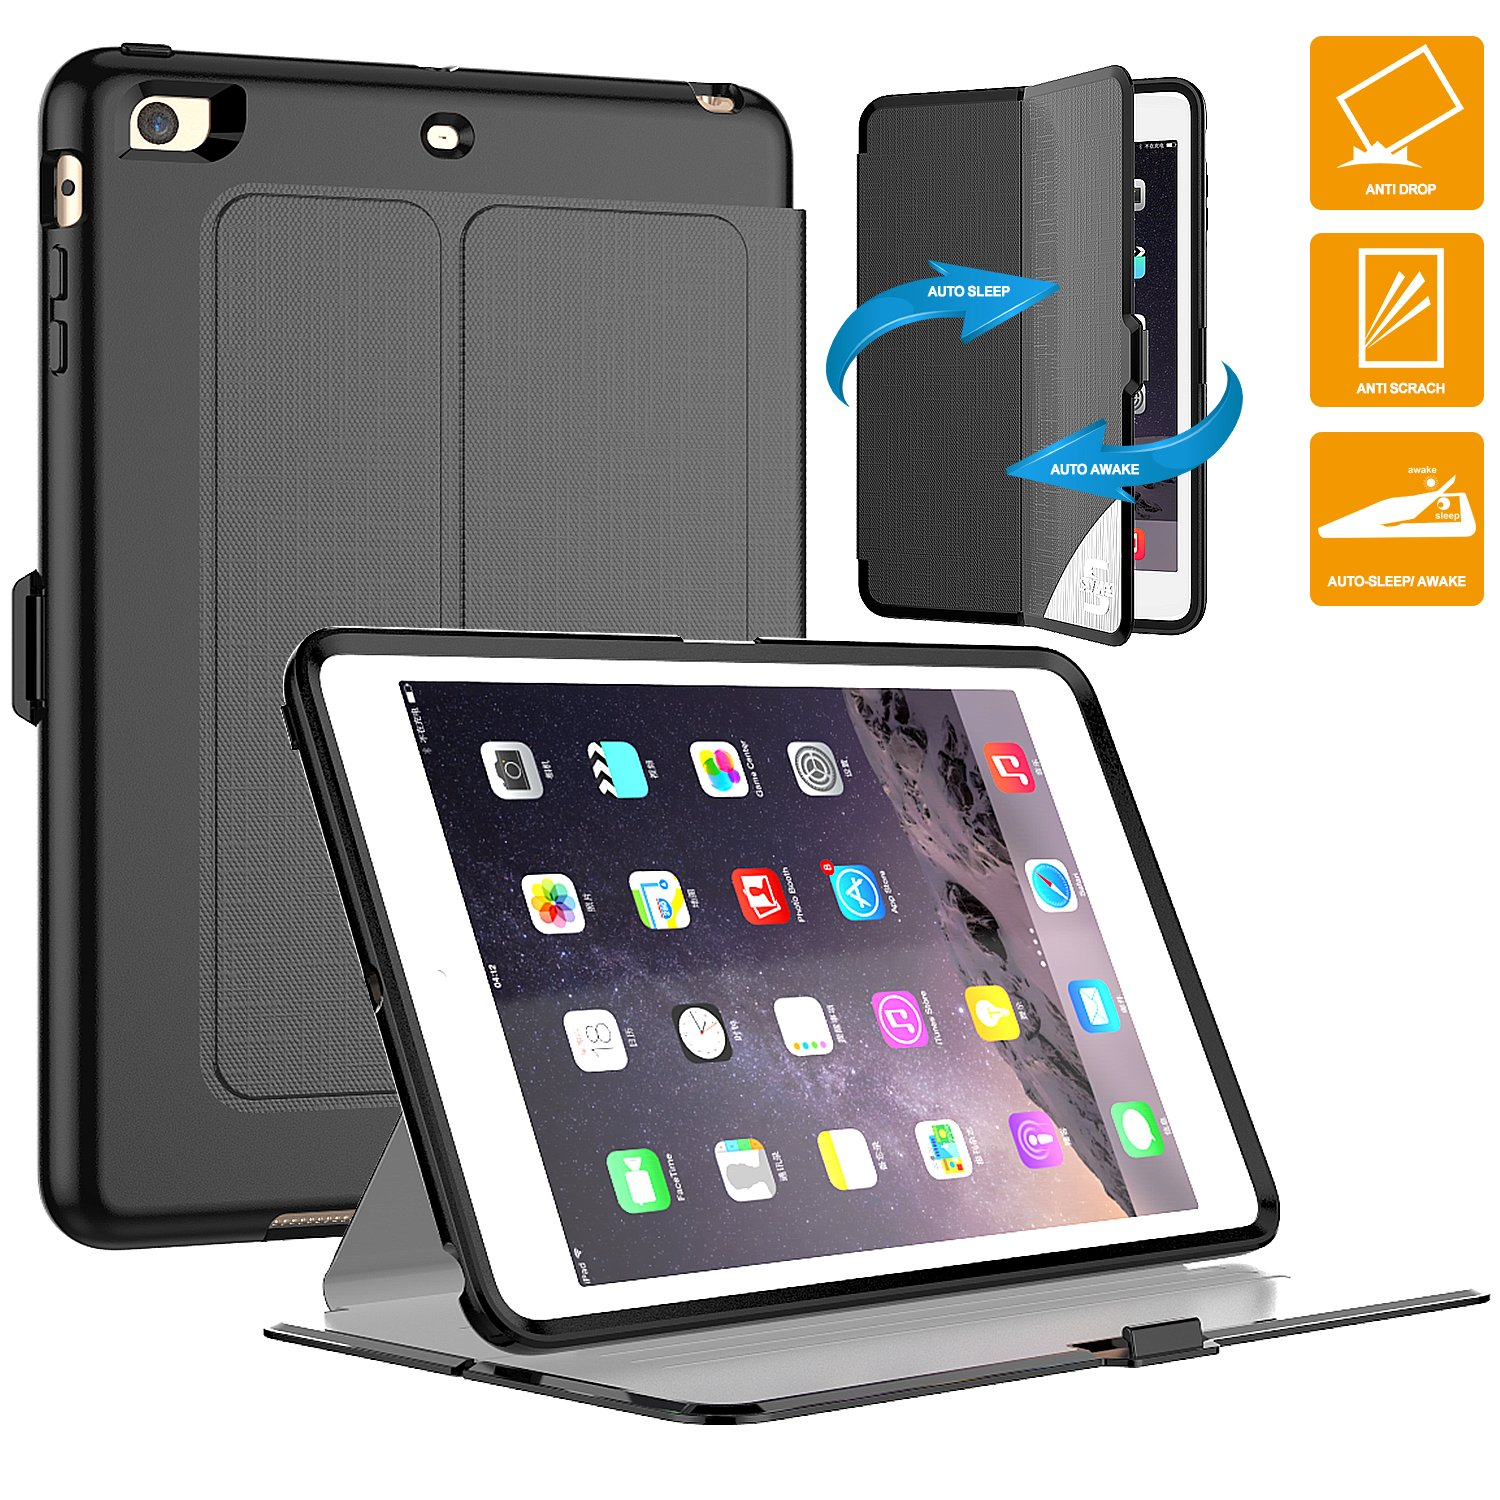 iPad Mini 3 Case, SEYMAC Full Body Rugged Shockproof Drop Protection Durable Leather [Hard Cover+Soft TPU] Stand Defender Case for iPad Mini 1st, 2nd, 3rd Generation -Schools, Work, Business[Black]